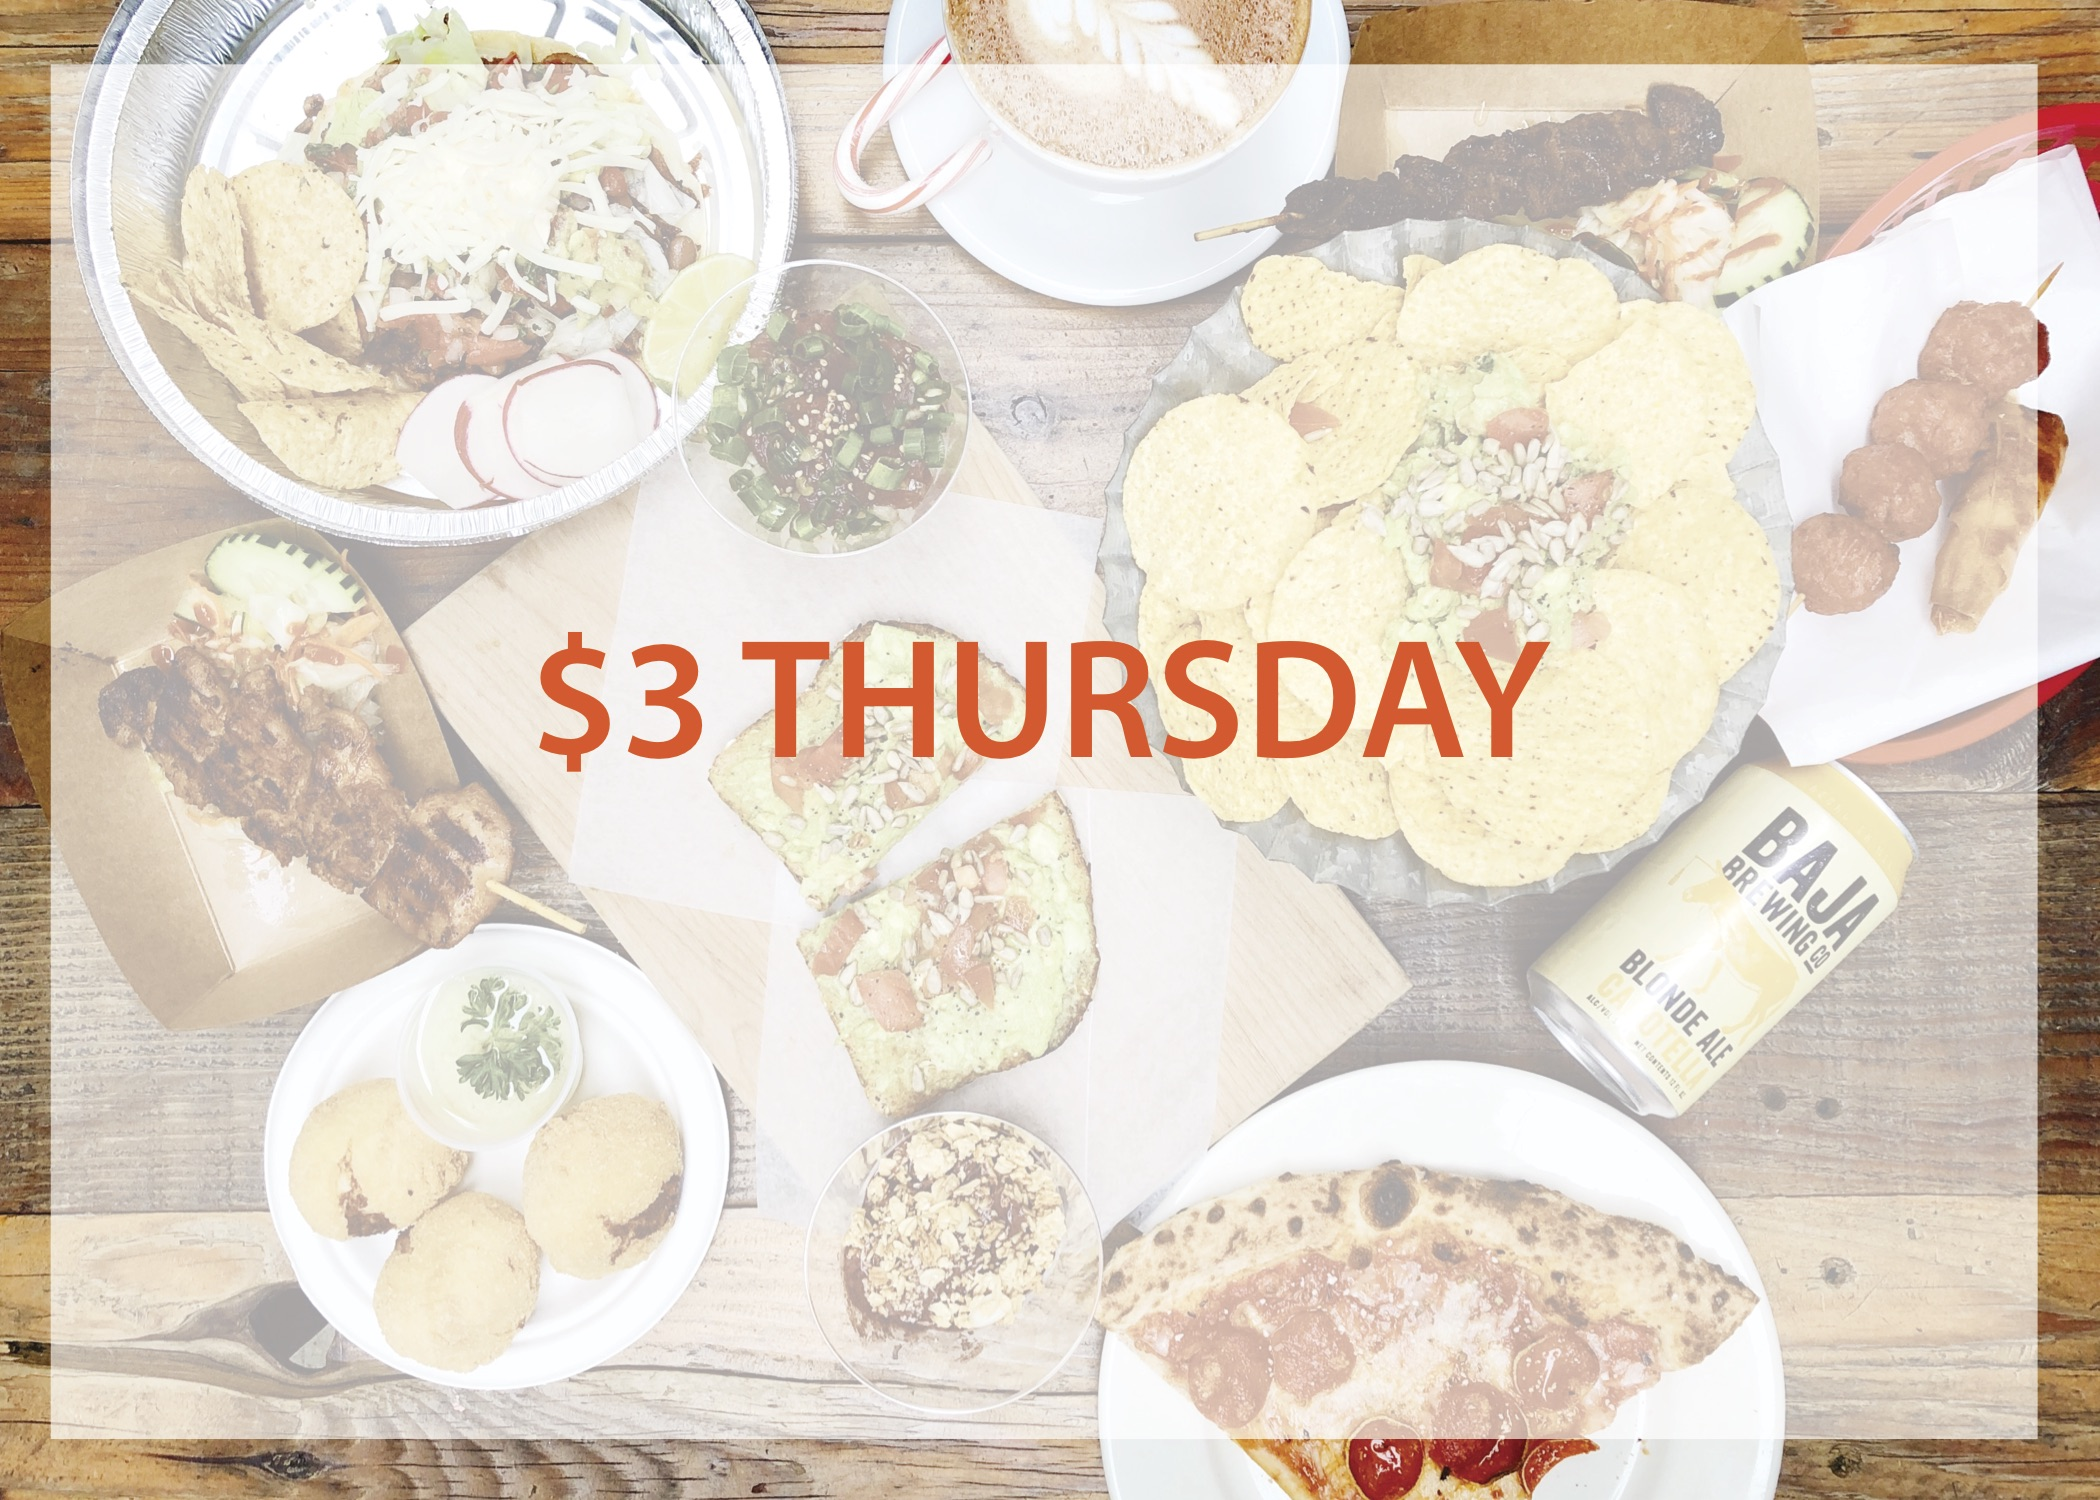 Three Dollar Thursday - Stop by the SoFA Market every Third Thursday and grab a variety of small plates from our participating eateries from their unique menus! We will also have live music and specials at The Fountainhead Bar